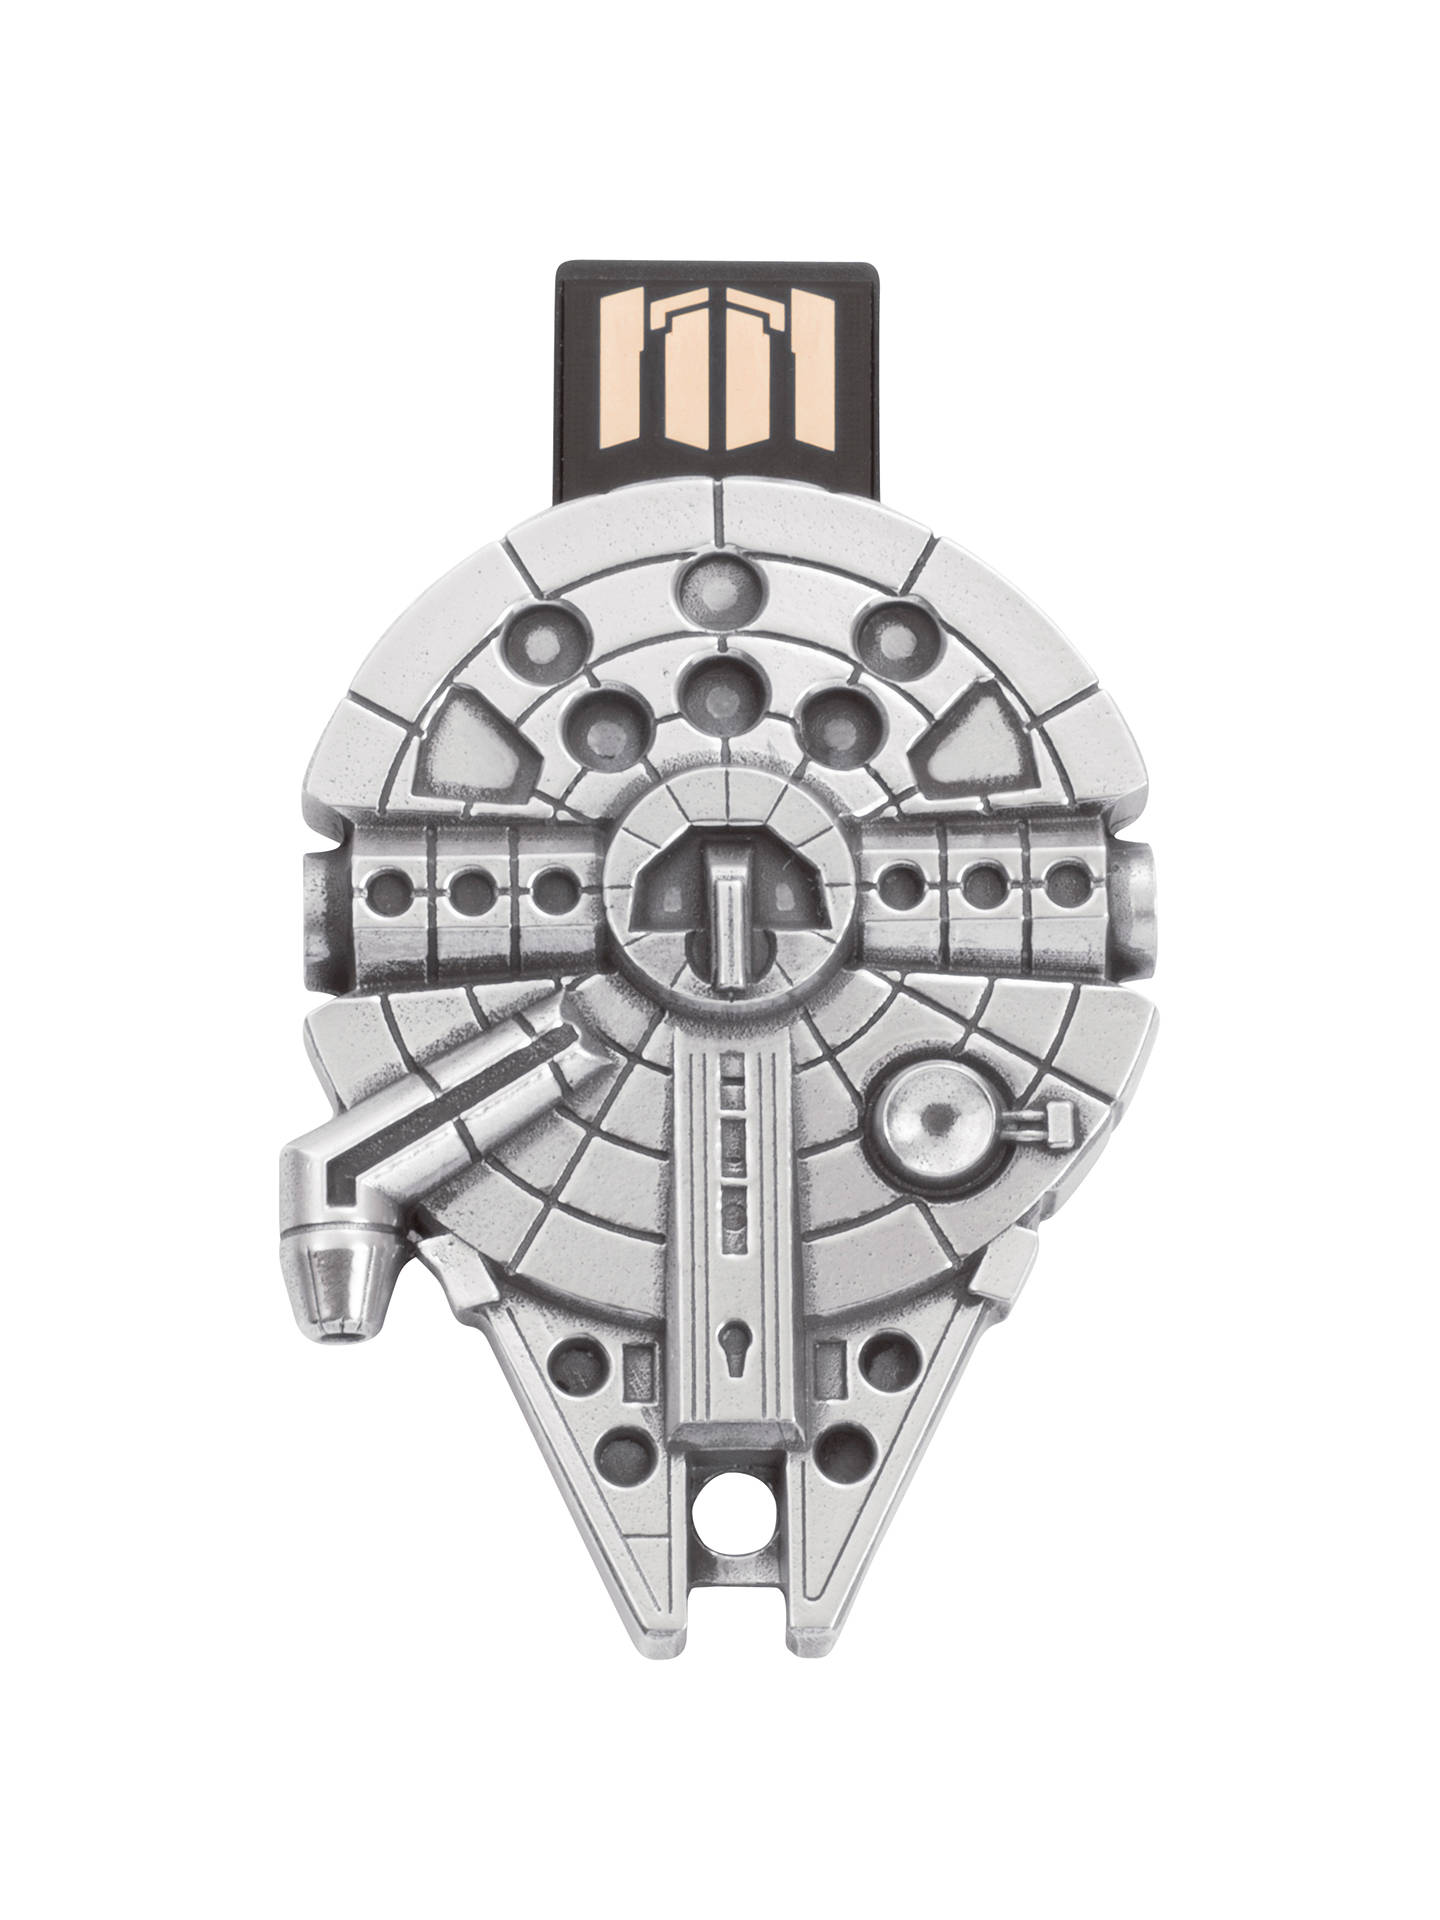 eb52edd73fc2 Buy Royal Selangor Star Wars Millenium Falcon USB Flash Drive